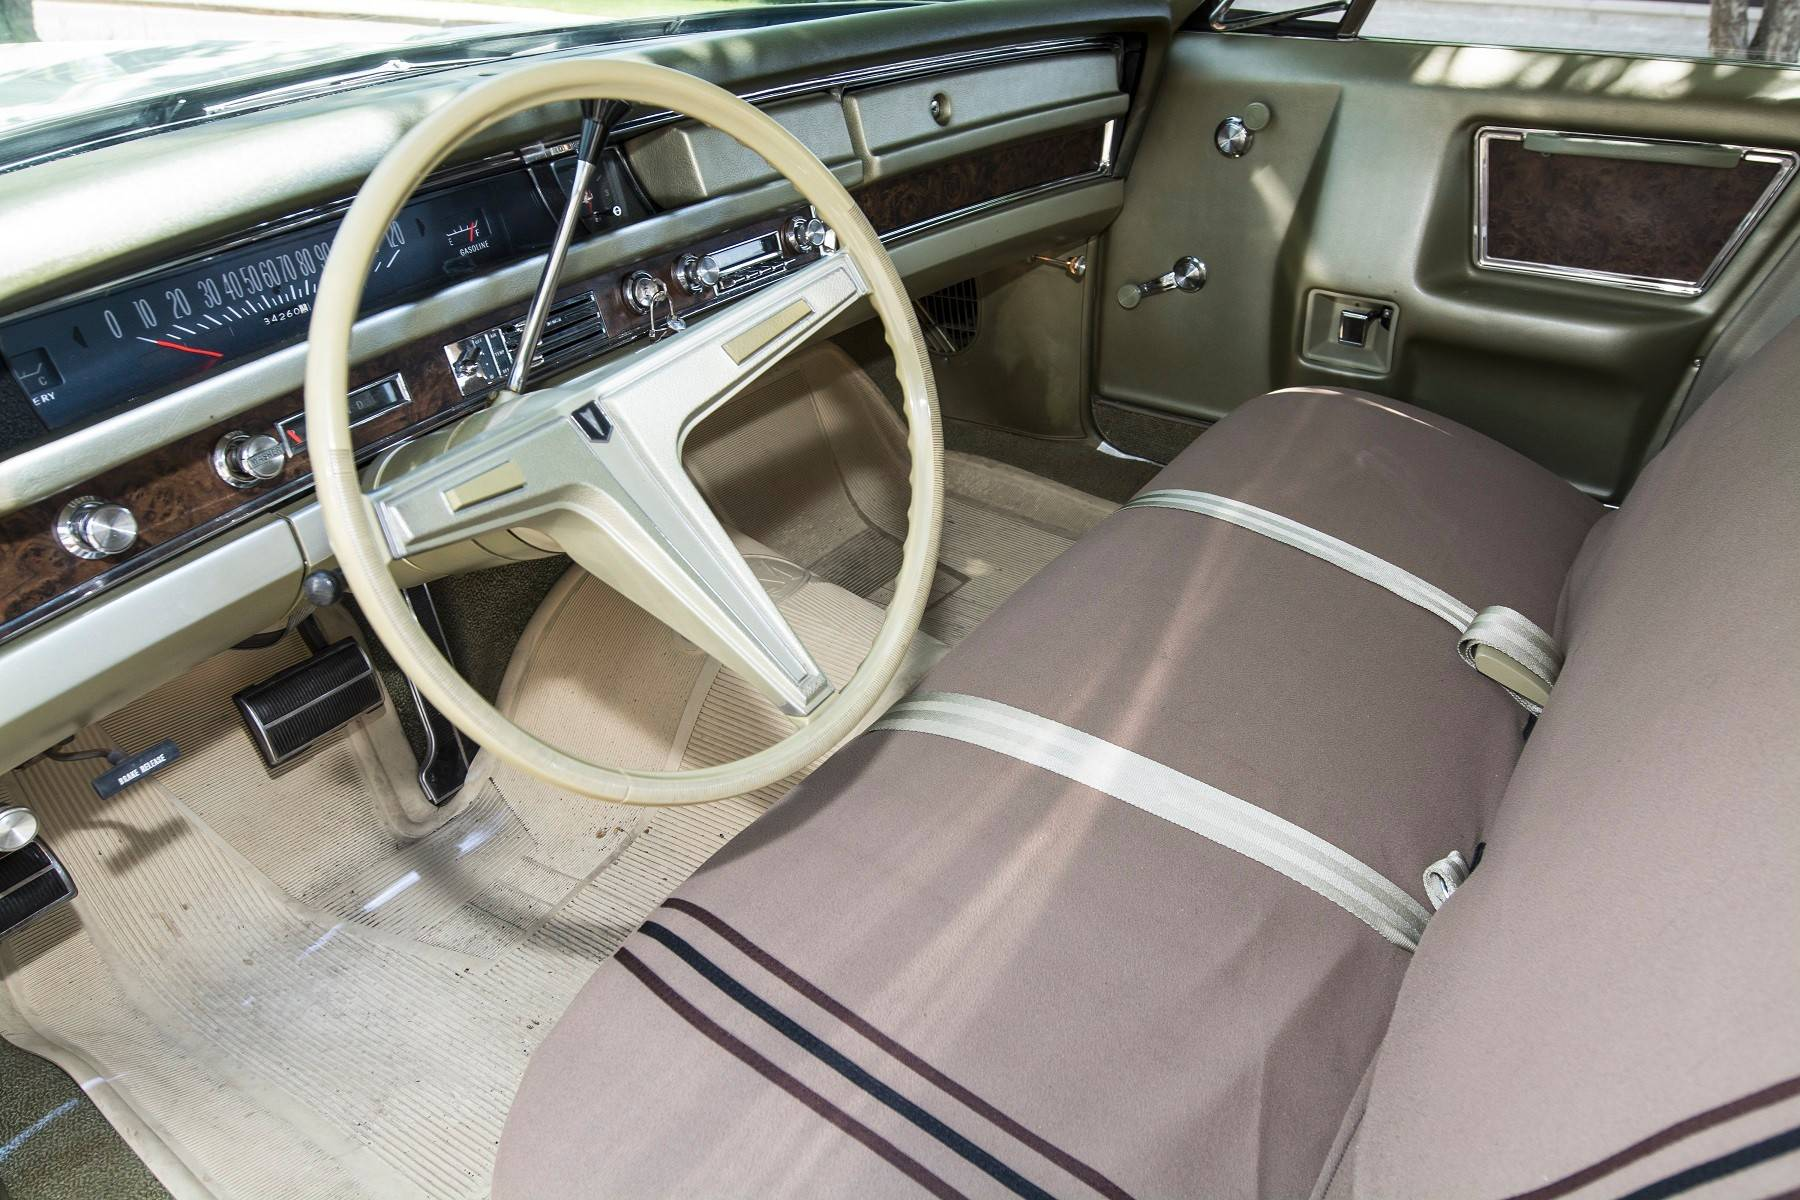 The full-size Pontiac Grande Parisienne has a large and comfortable interior.